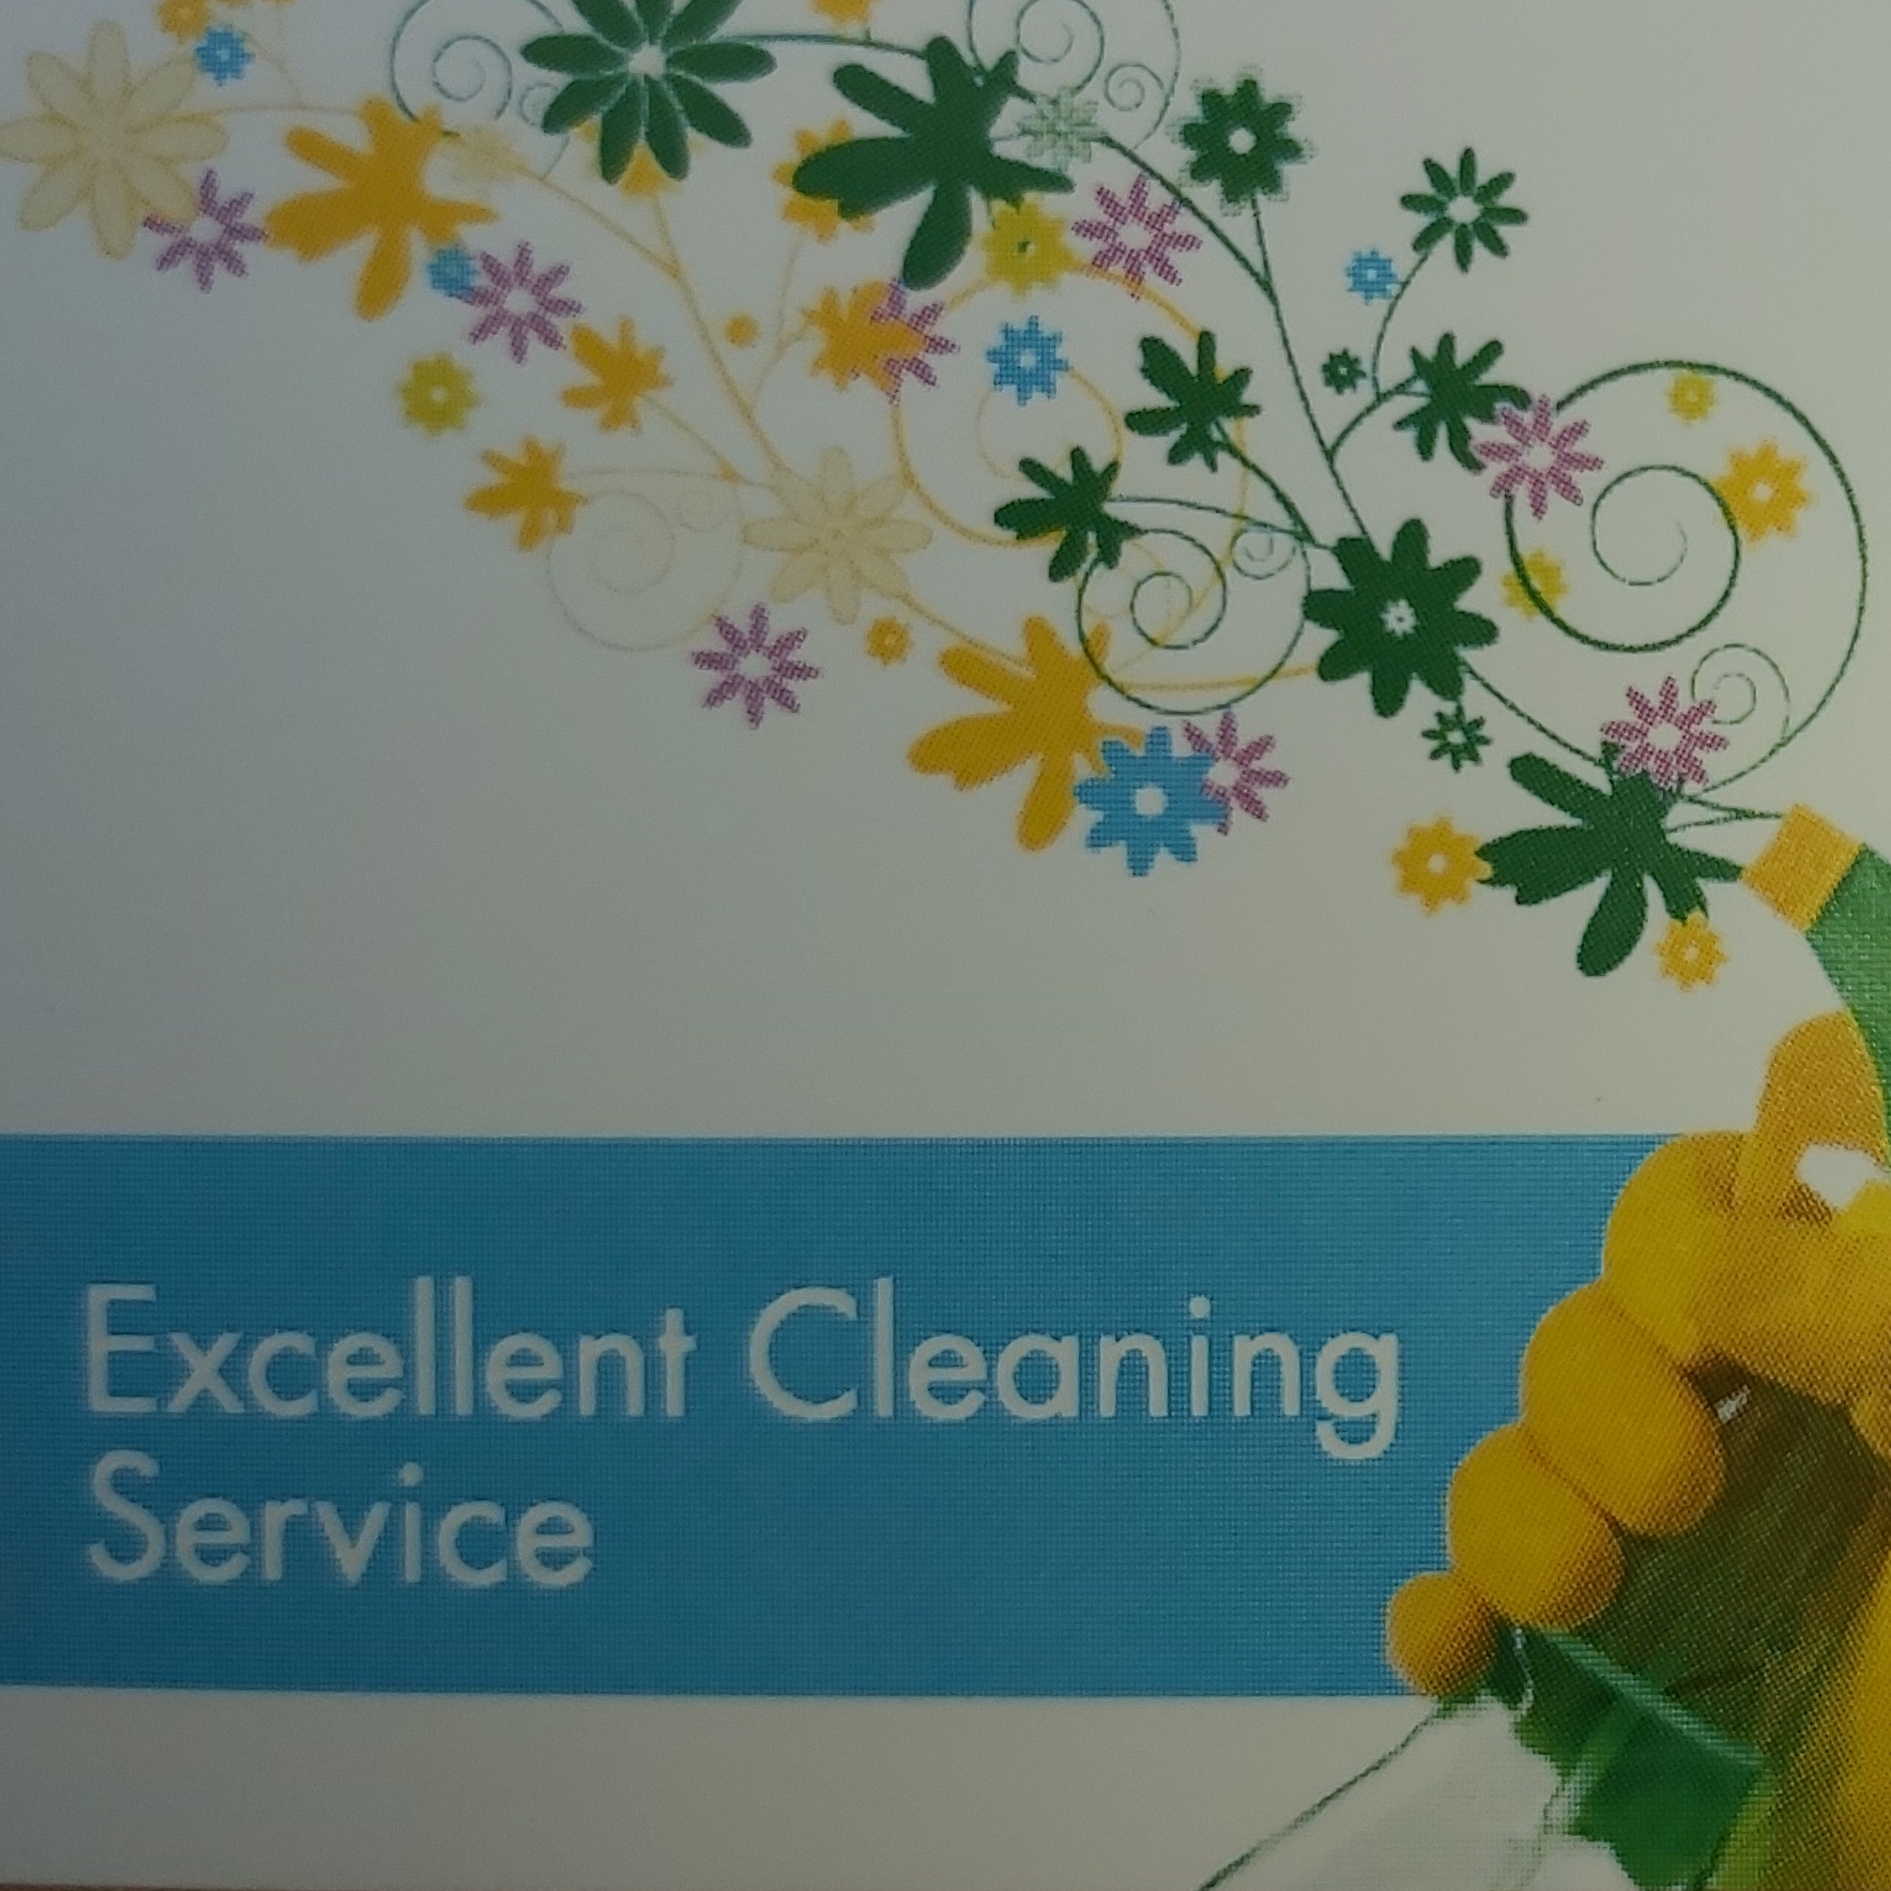 Excellent Cleaning Service